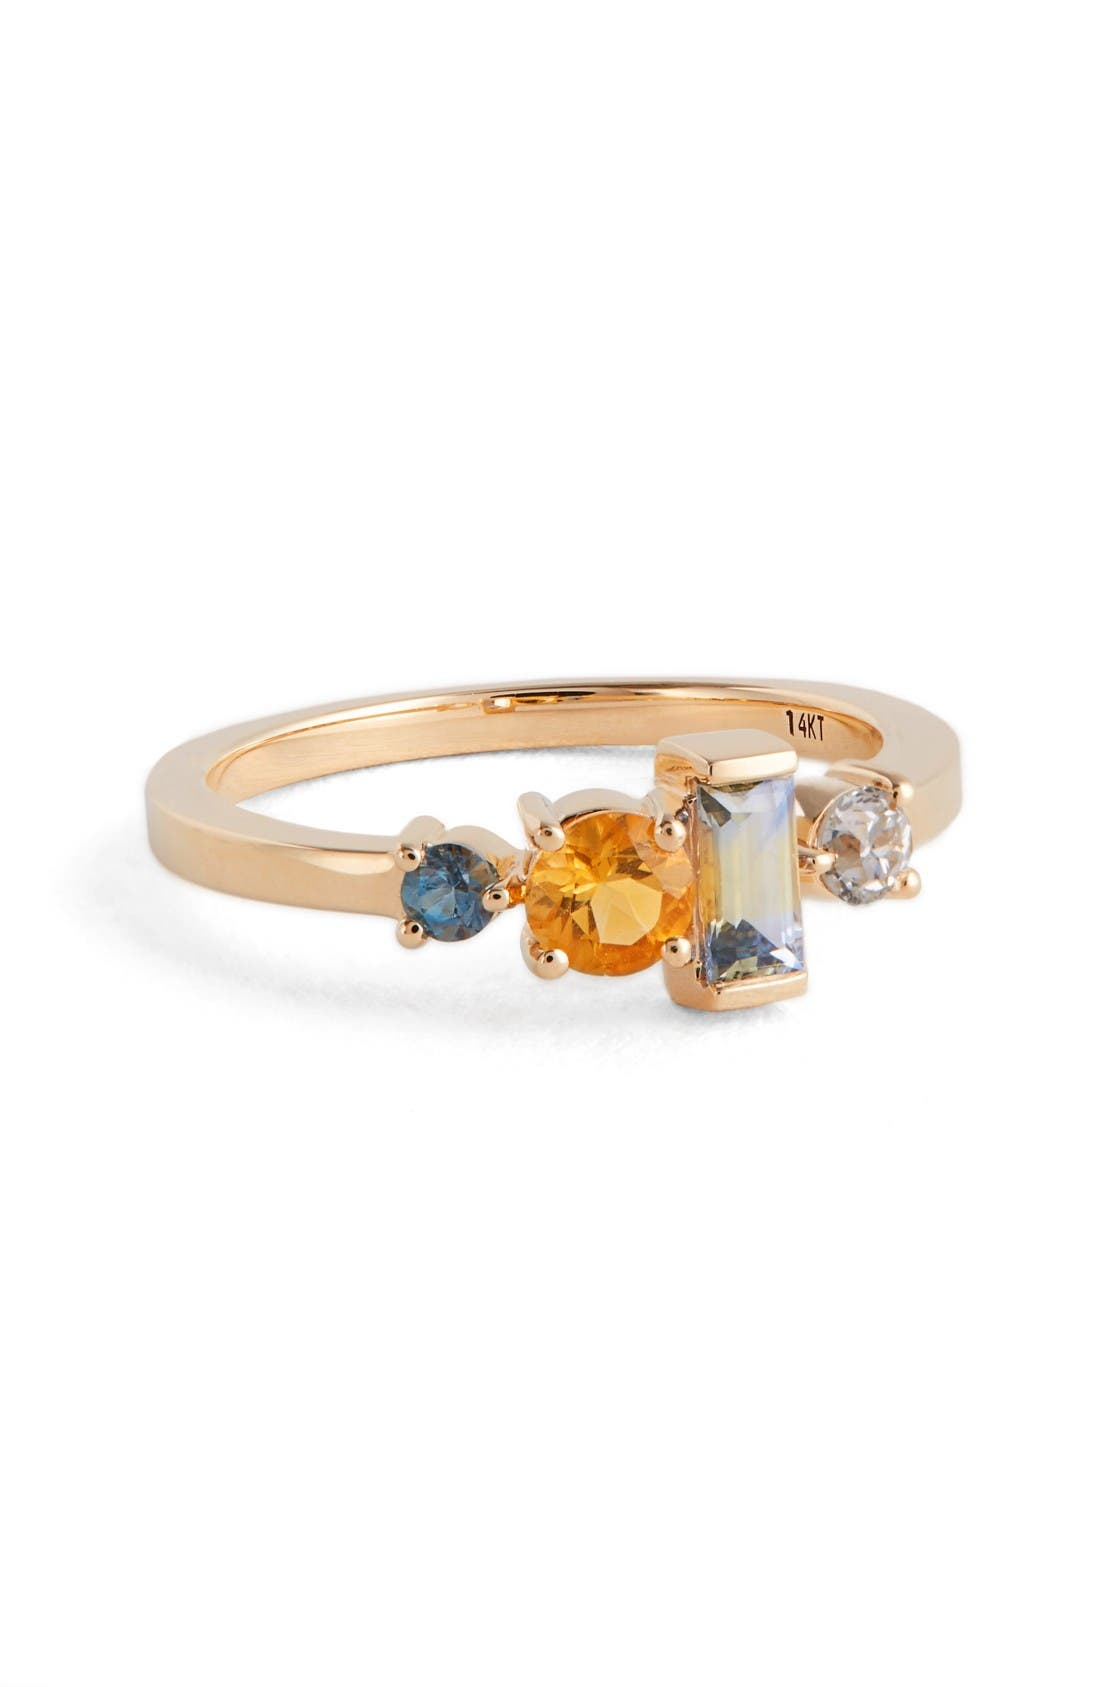 MOCIUN Sapphire, Citrine, Diamond & Aquamarine Ring (Nordstrom Exclusive)